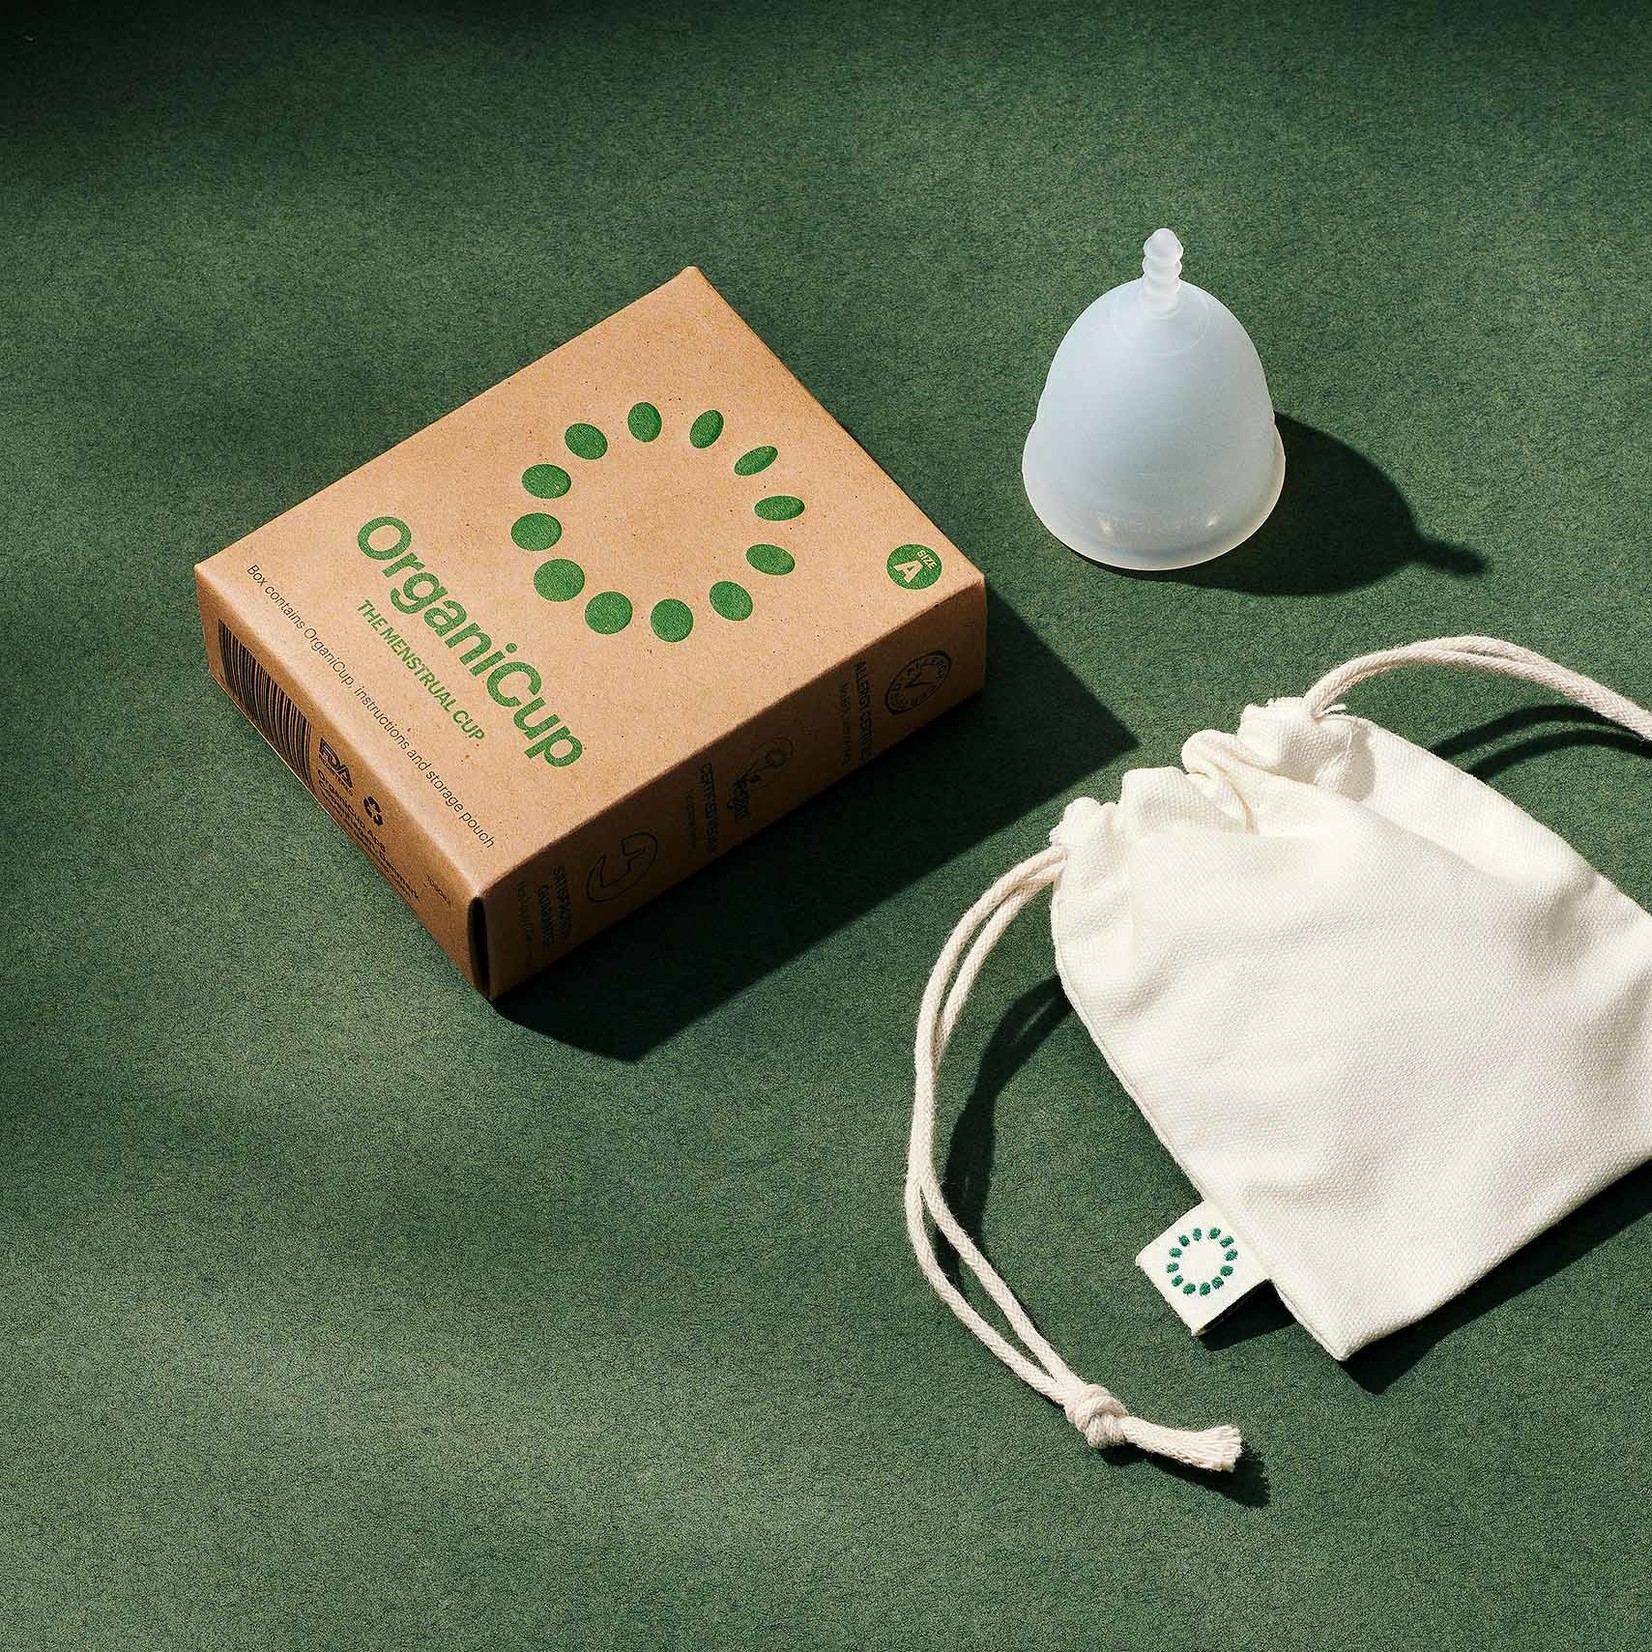 OrganiCup OrganiCup Menstrual Cup model A